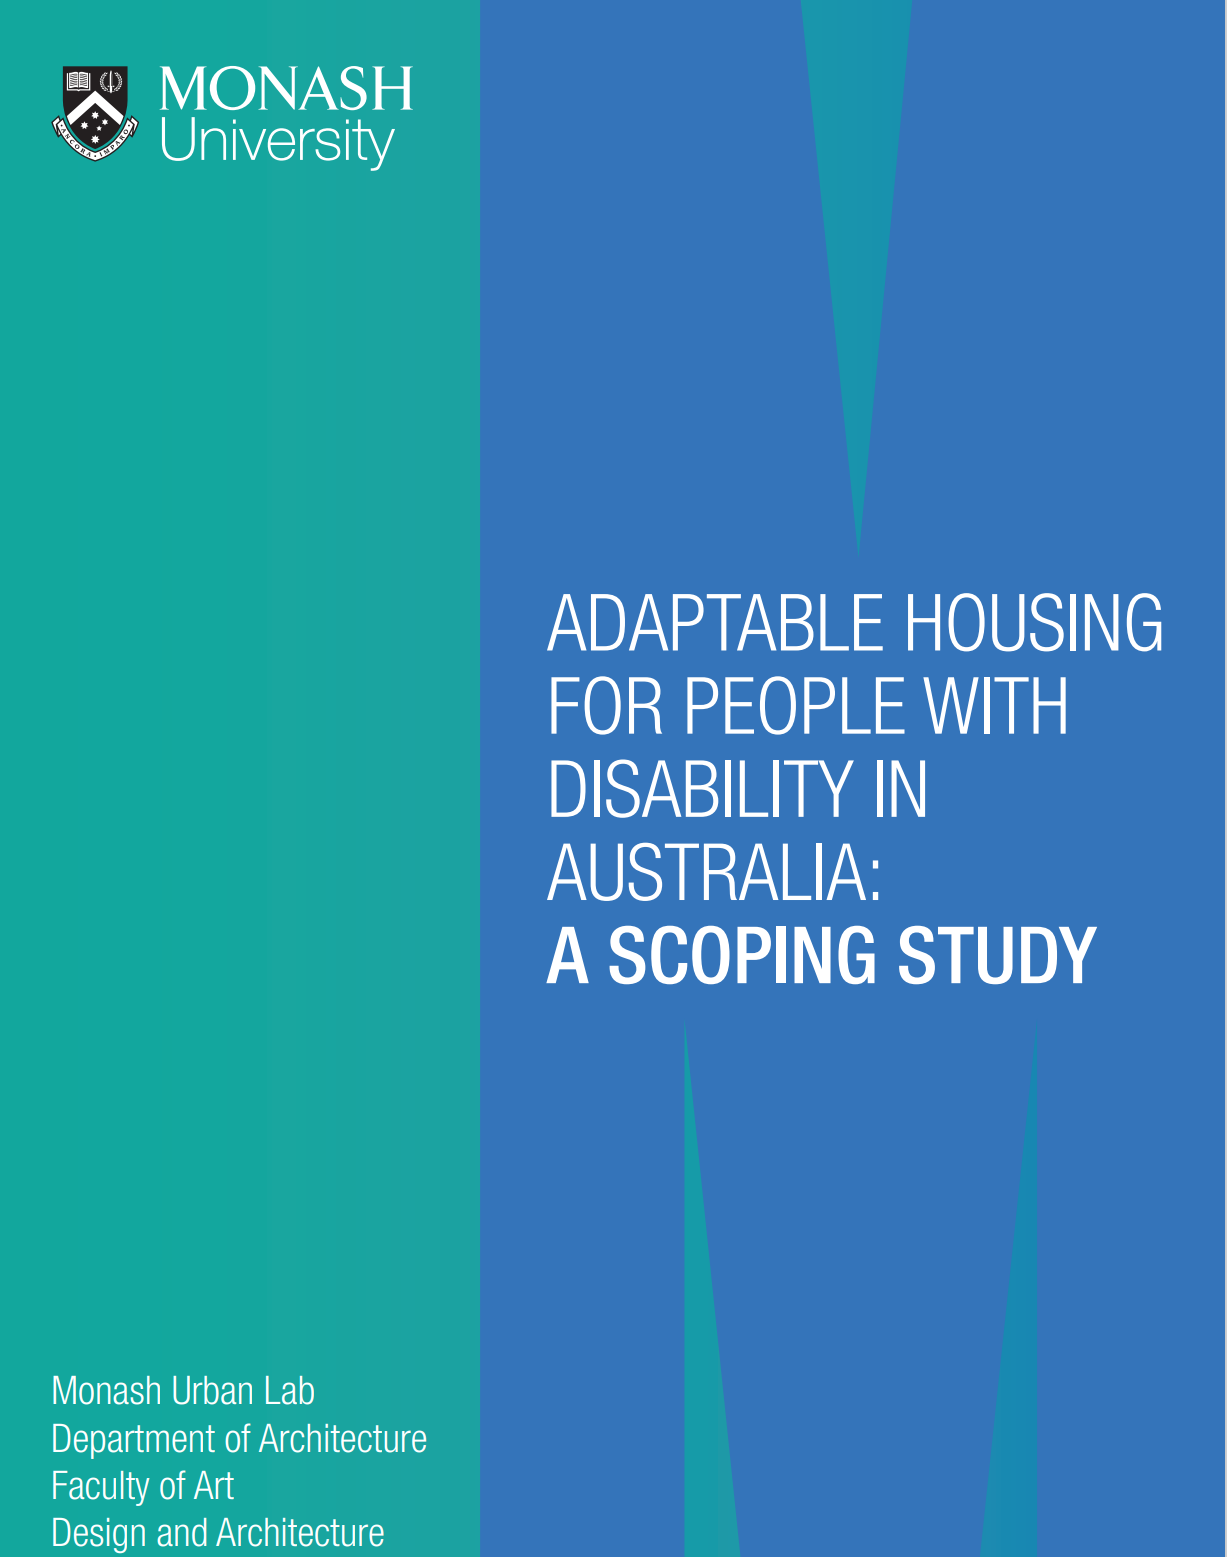 Cover art for: Adaptable Housing for People with Disability in Australia: A Scoping Study